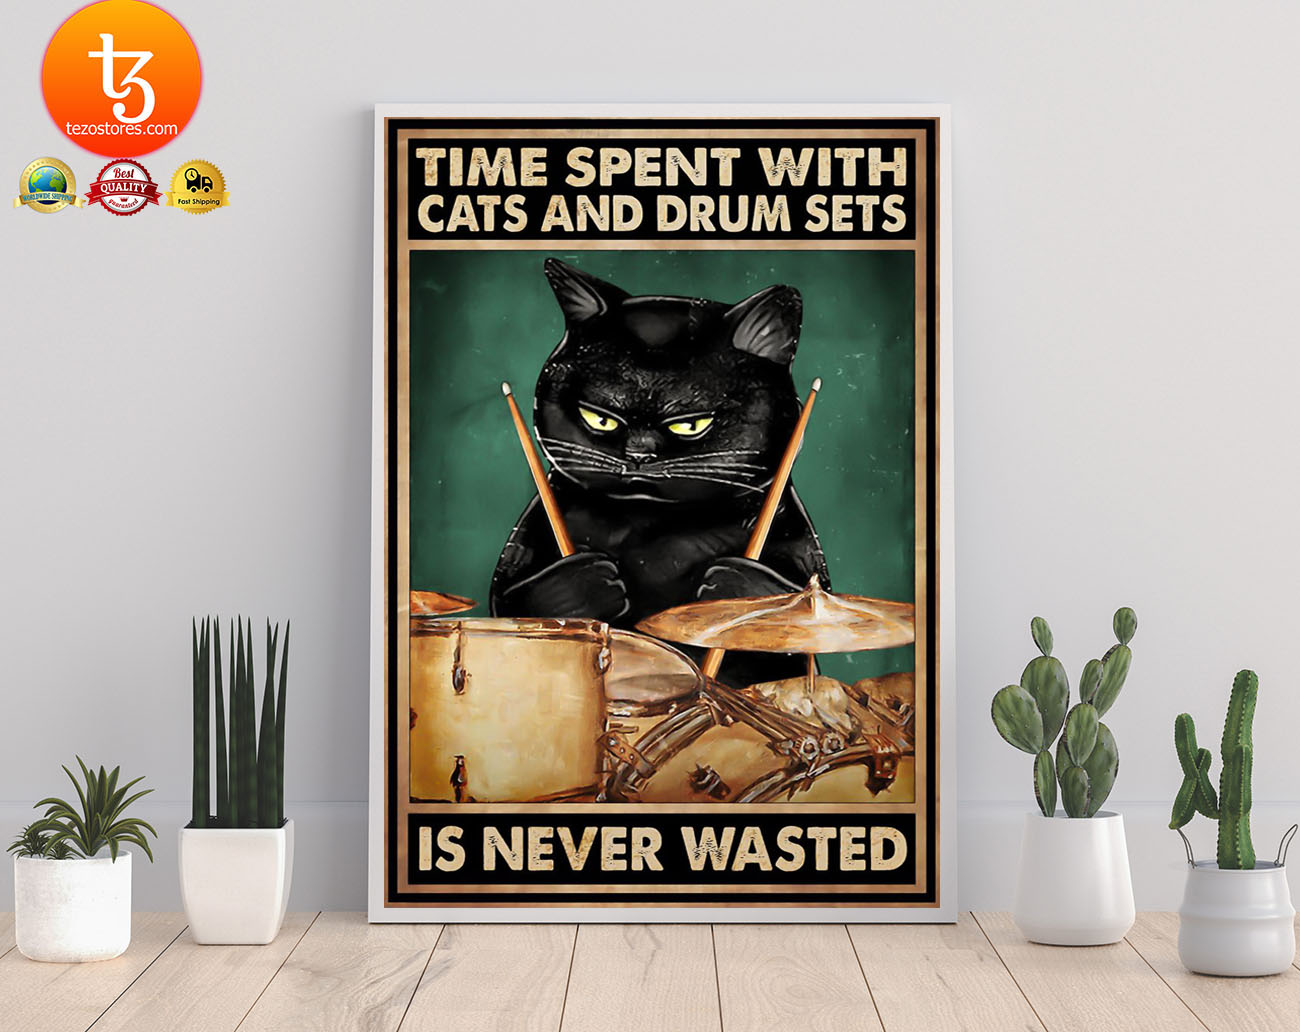 Time spent with cats and drum sets is never wasted poster 19